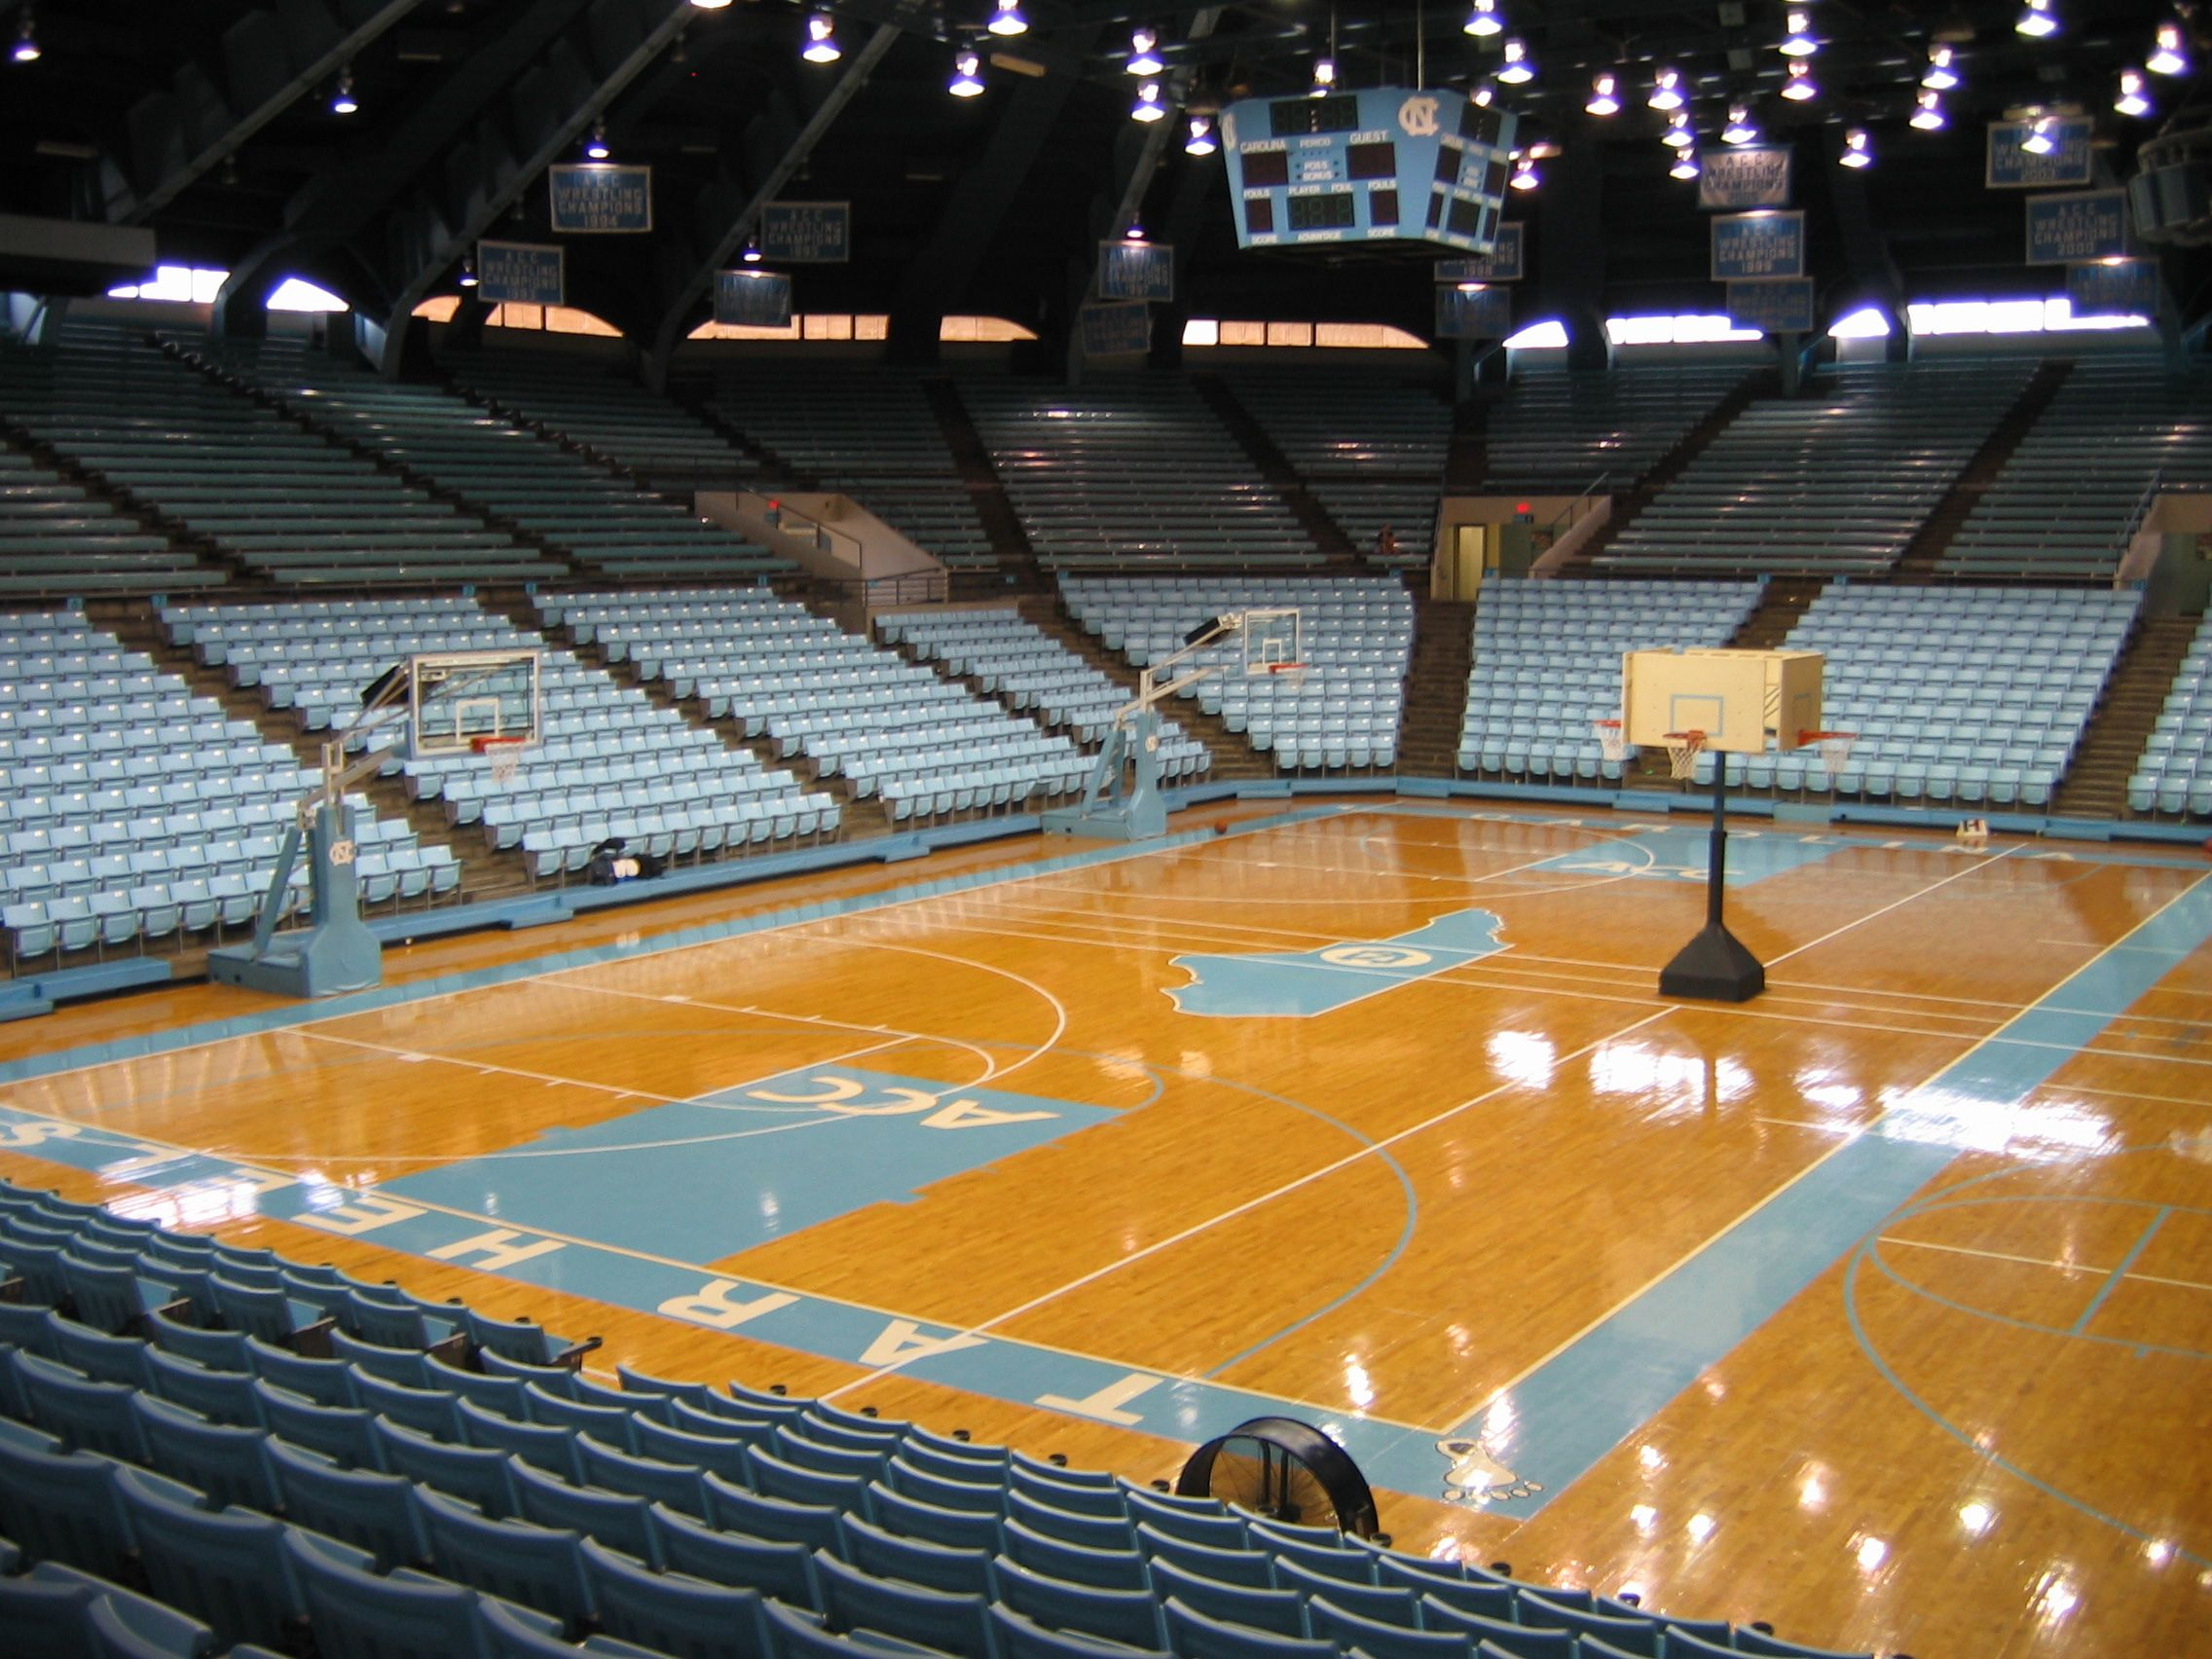 This Is Where I Played College Basketball The Dean Smith Center In Chapel Hill Or The Dean Dome As It Is Nc State Basketball Unc Sports Tarheels Basketball